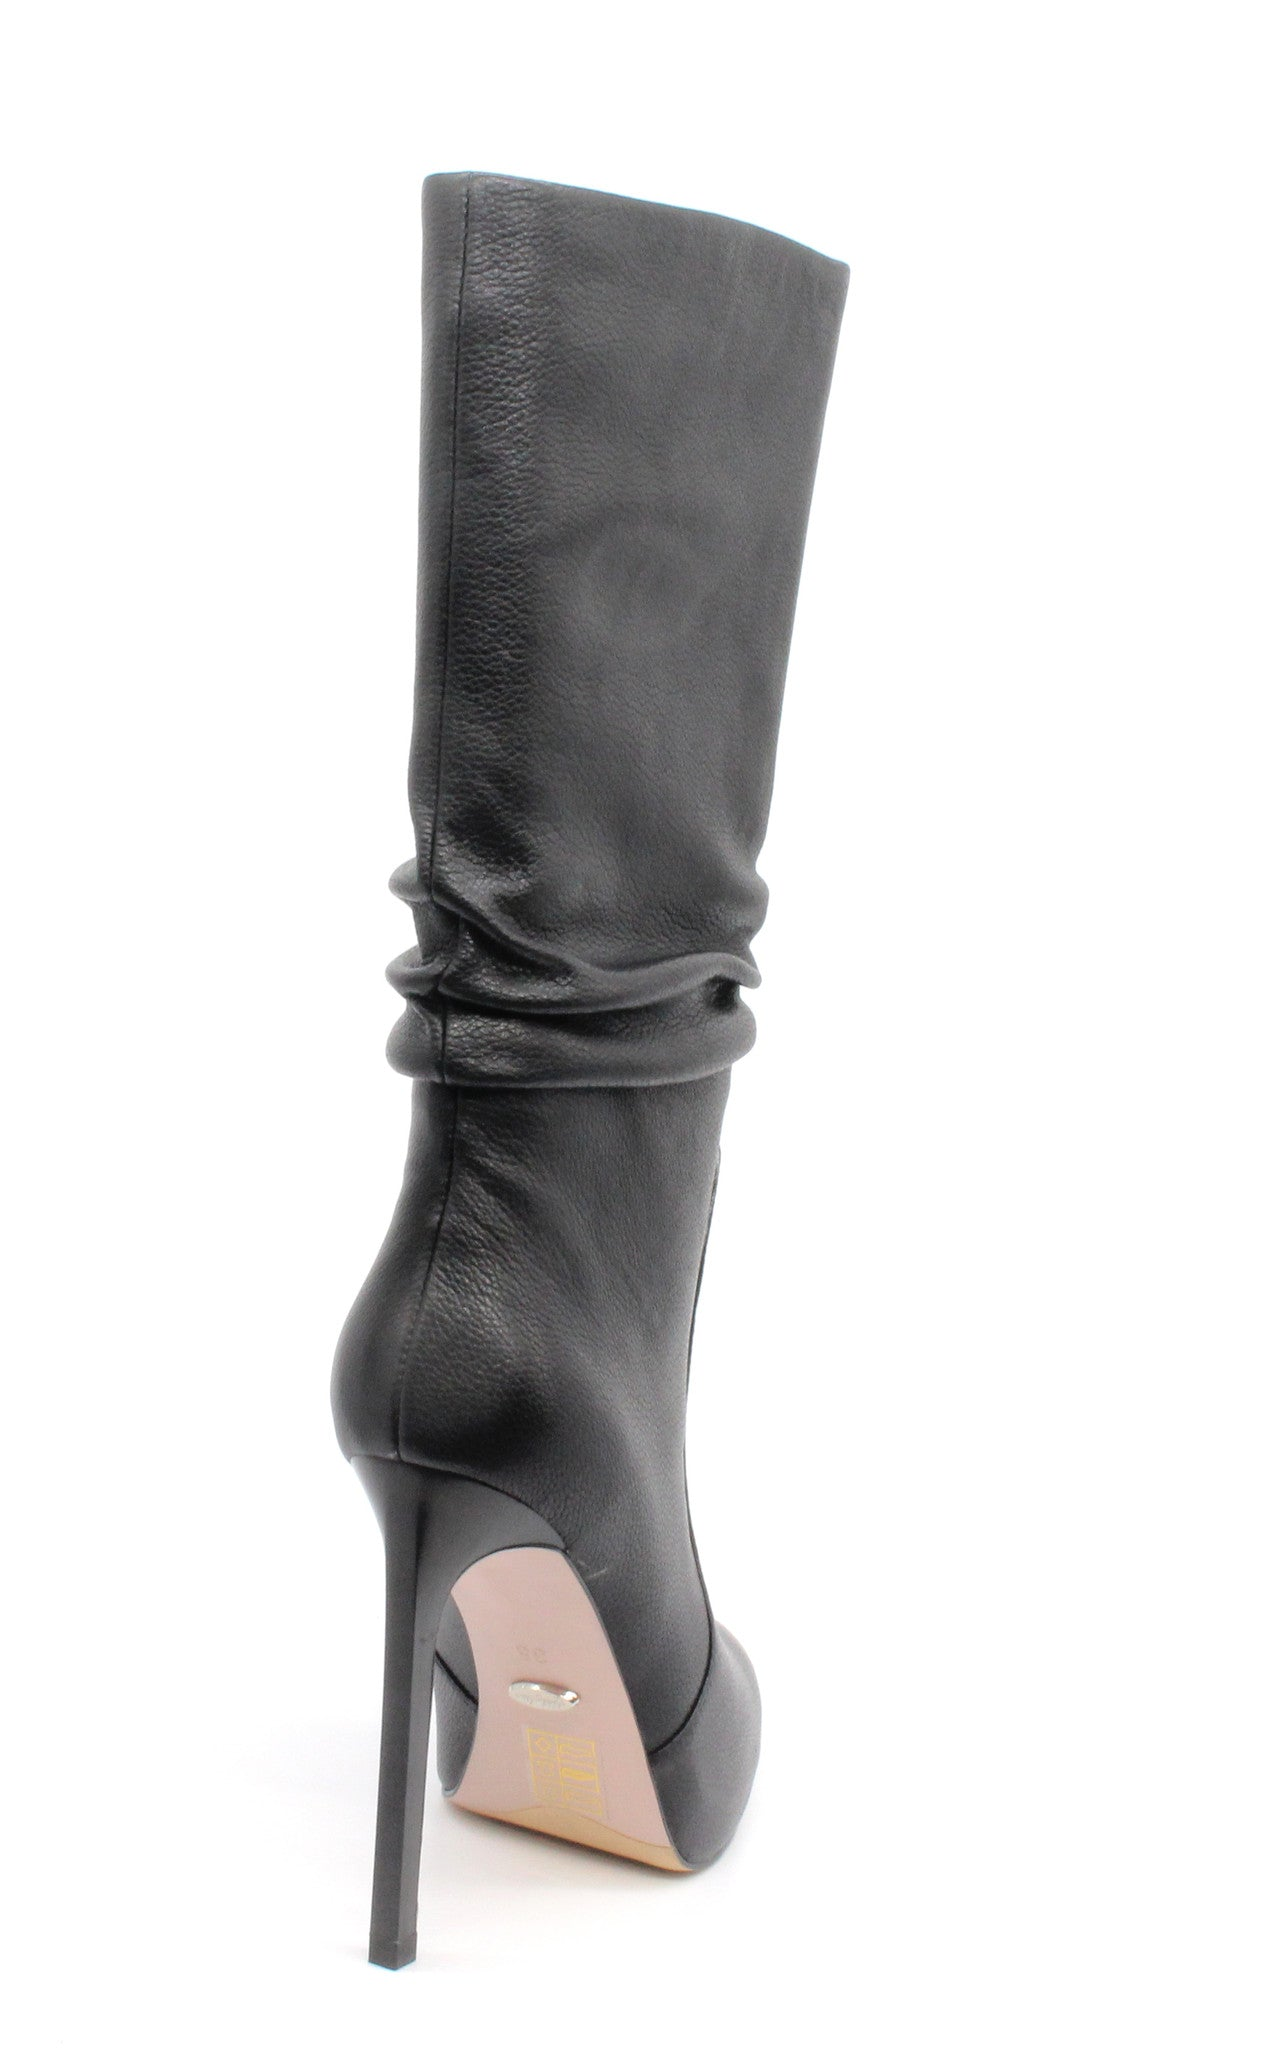 0265b4a98fa ... Black High Top Boots - 5 inch Leather Heels - Angelina Voloshina - AV  Heels ...